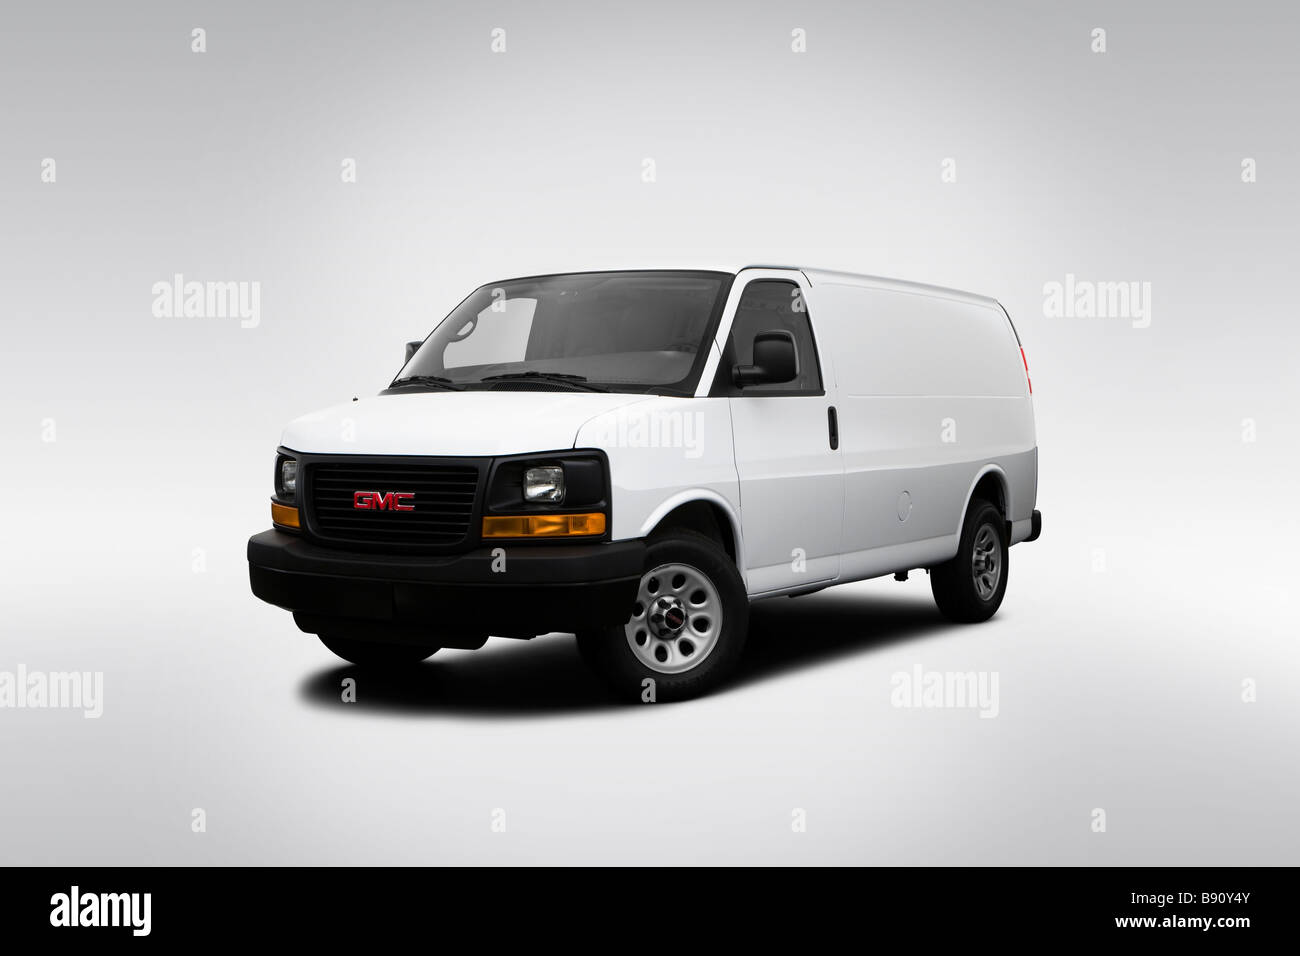 2009 gmc savana cargo 1500 work van in white front angle view